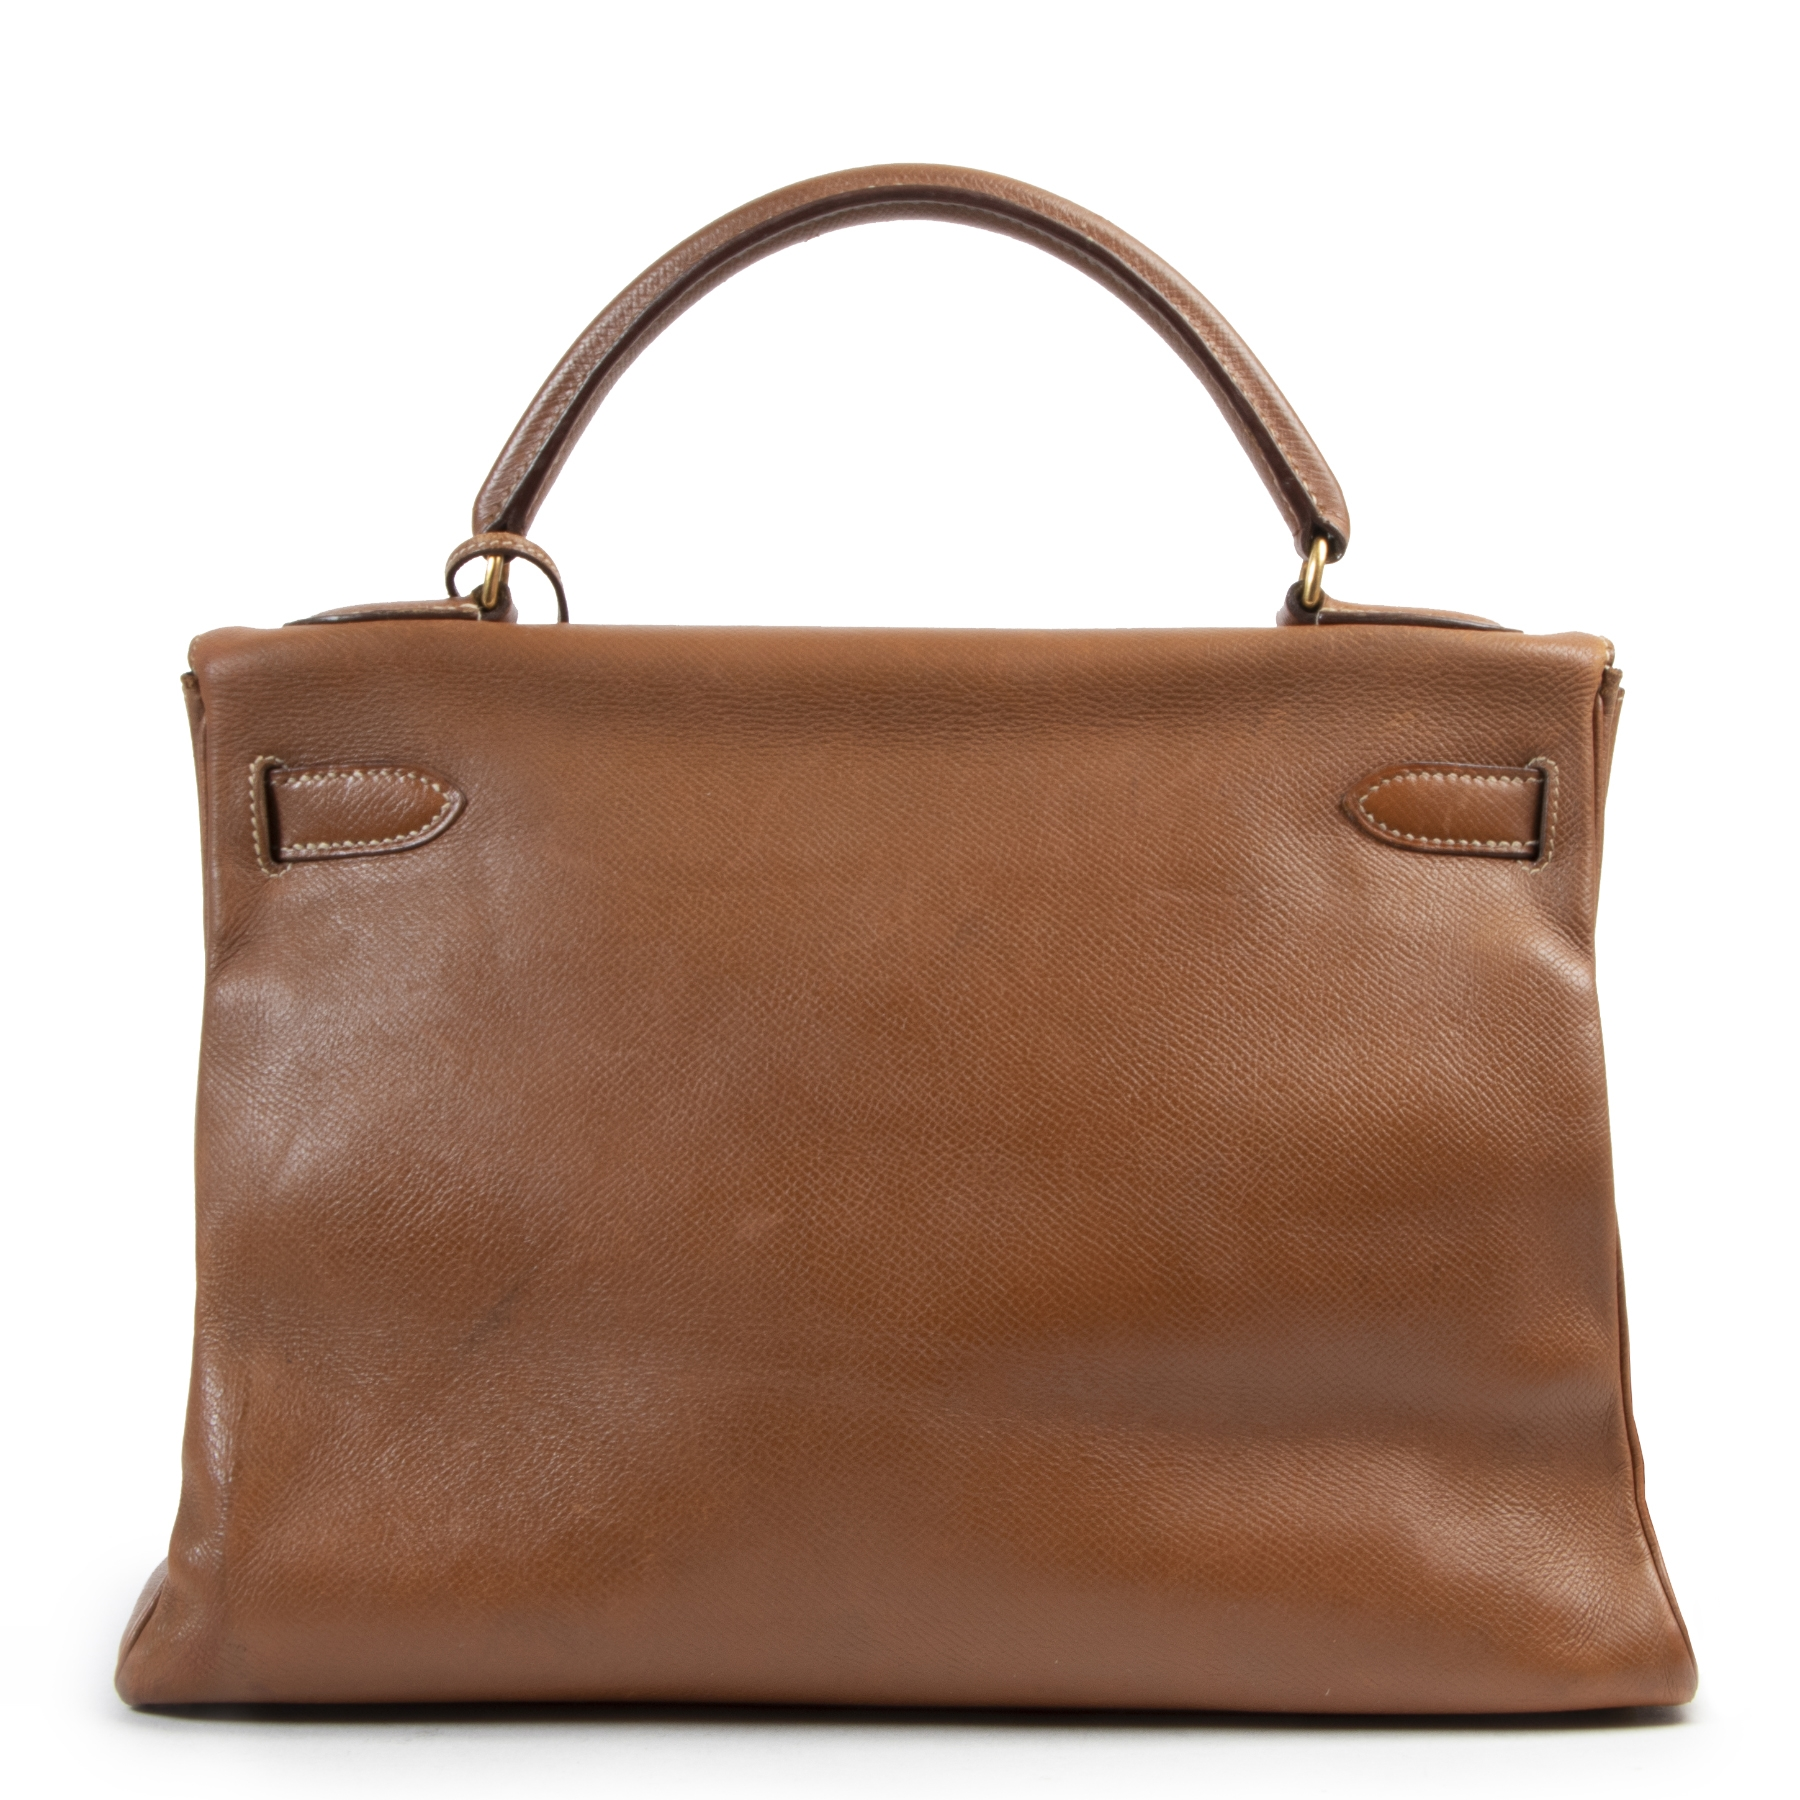 Buy this authentic second-hand vintage Hermès Kelly 32 Epsom Cognac at online webshop LabelLOV. Safe and secure shopping. Koop deze authentieke tweedehands vintage Hermès Kelly 32 Epsom Cognac bij online webshop LabelLOV.